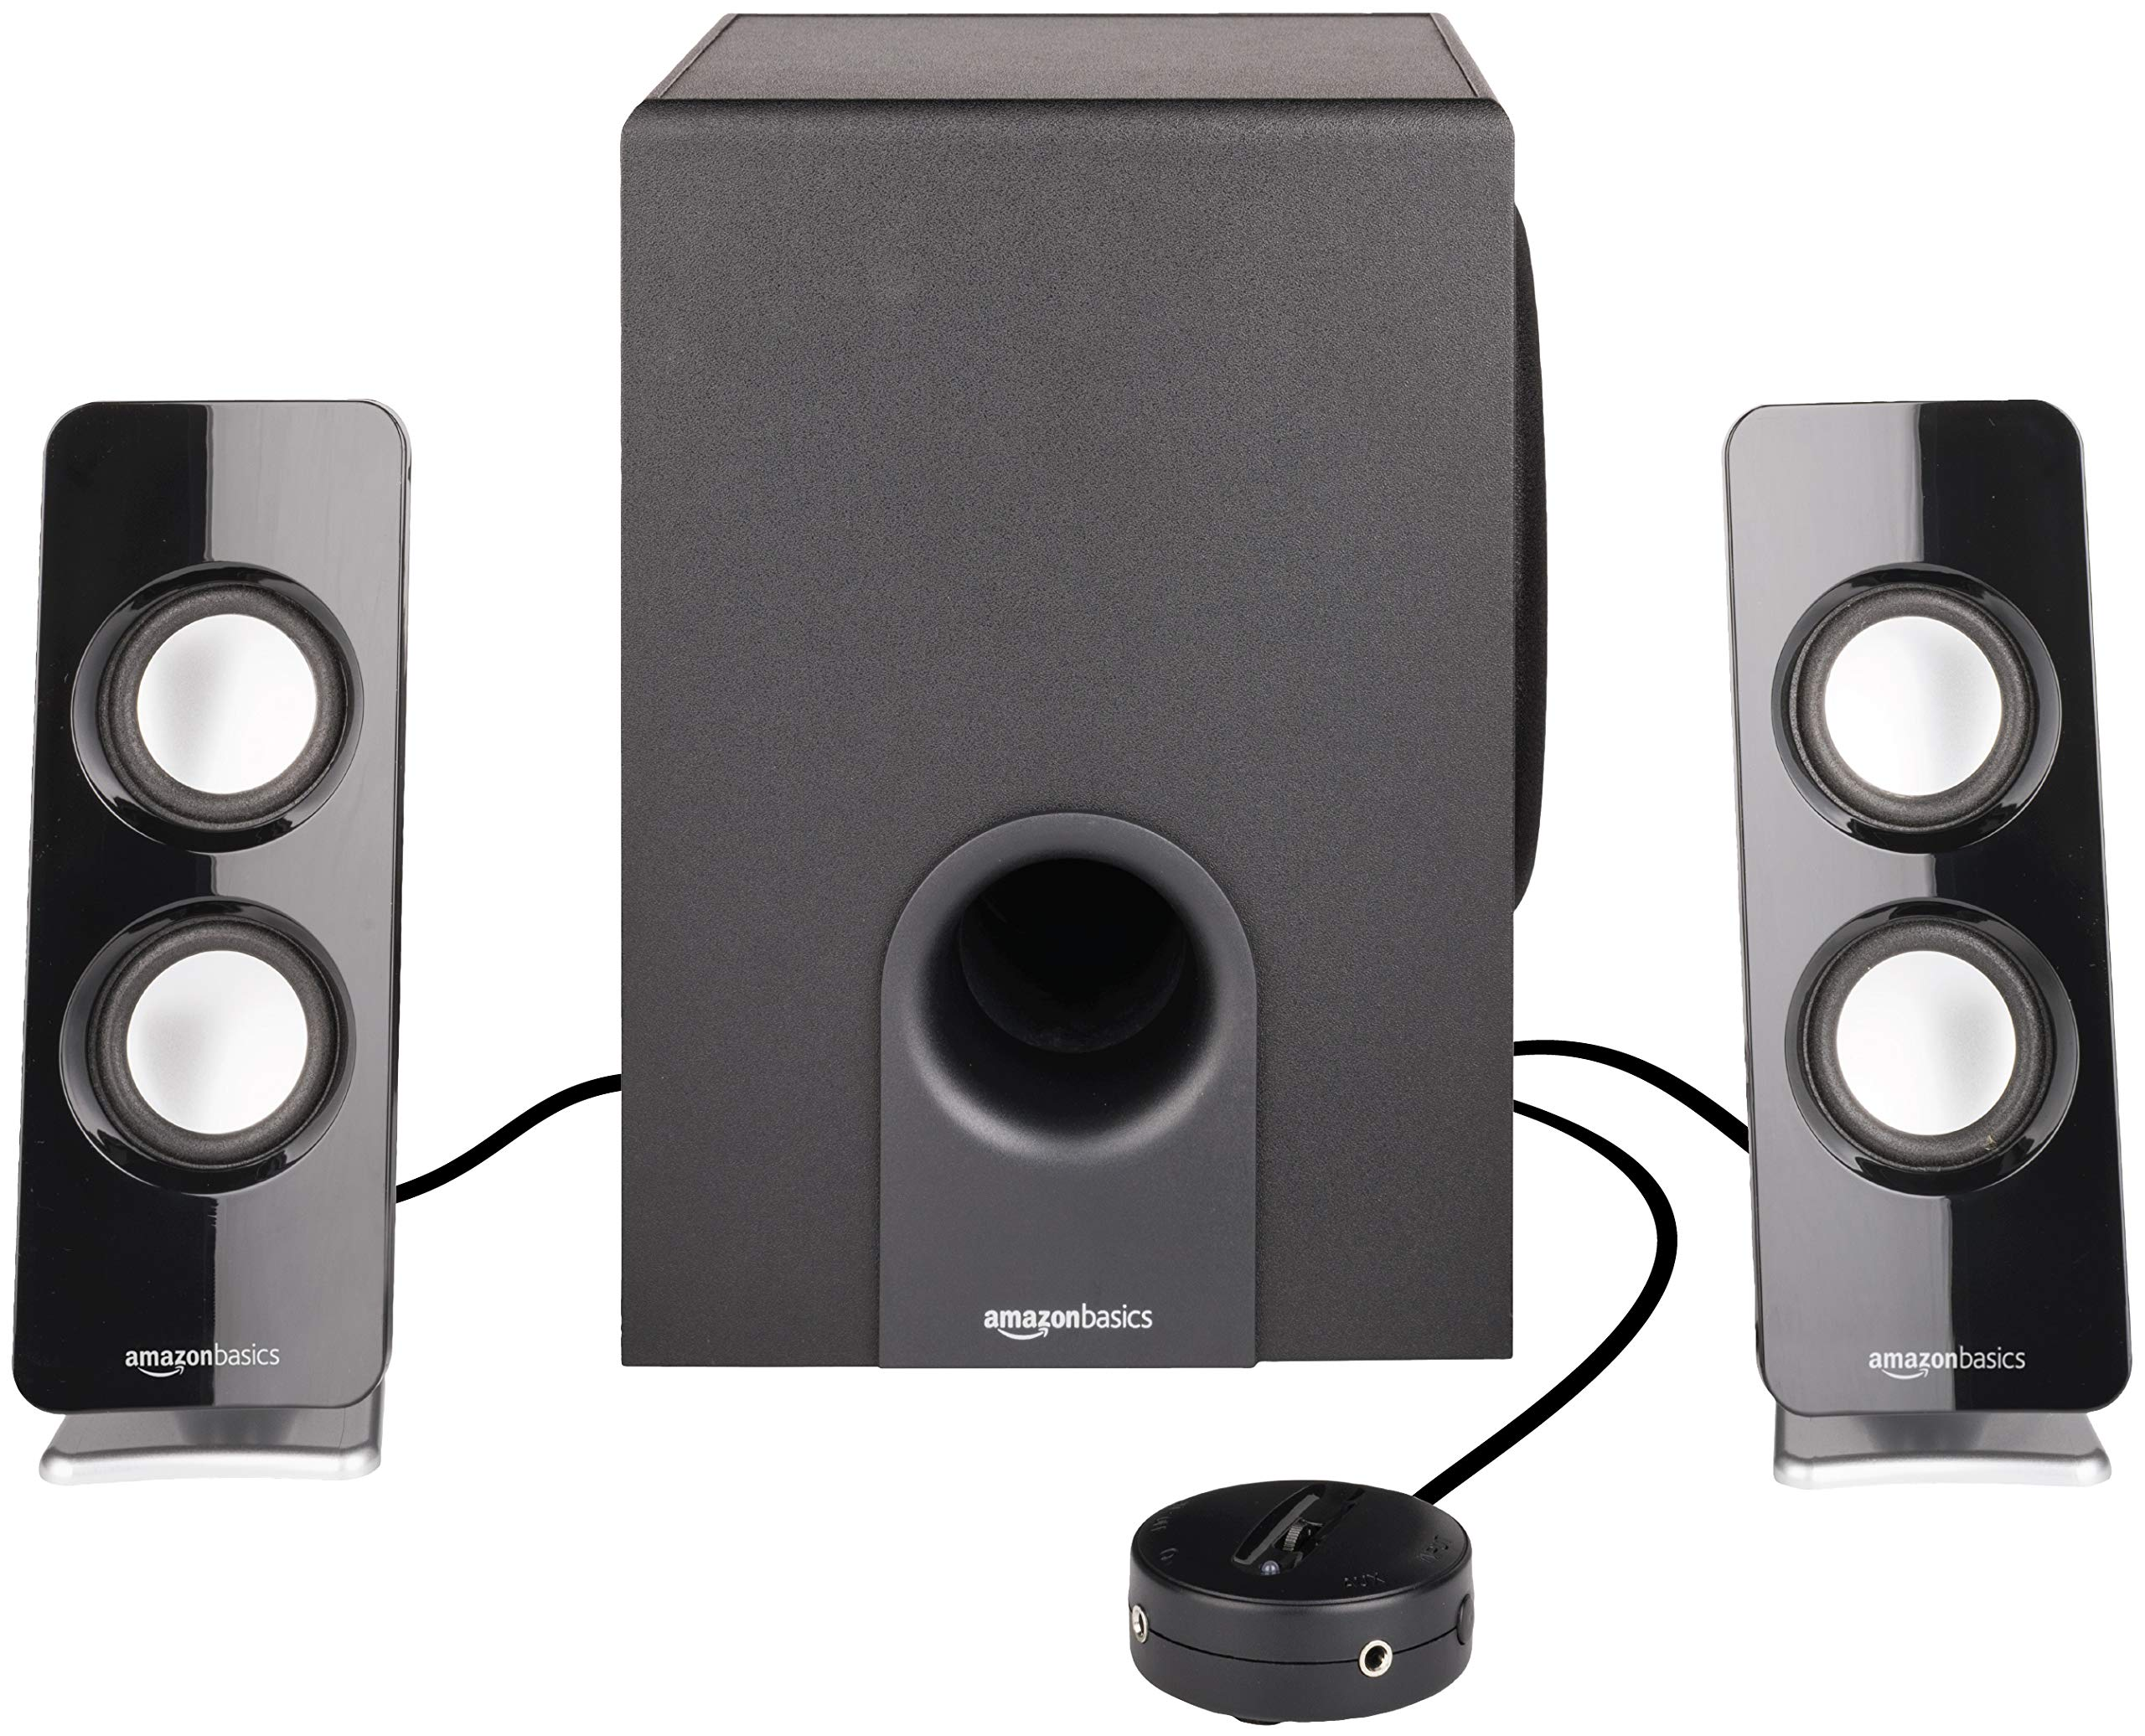 Amazon Basics AC Powered 2.1 30W Bluetooth Computer Speakers with Subwoofer